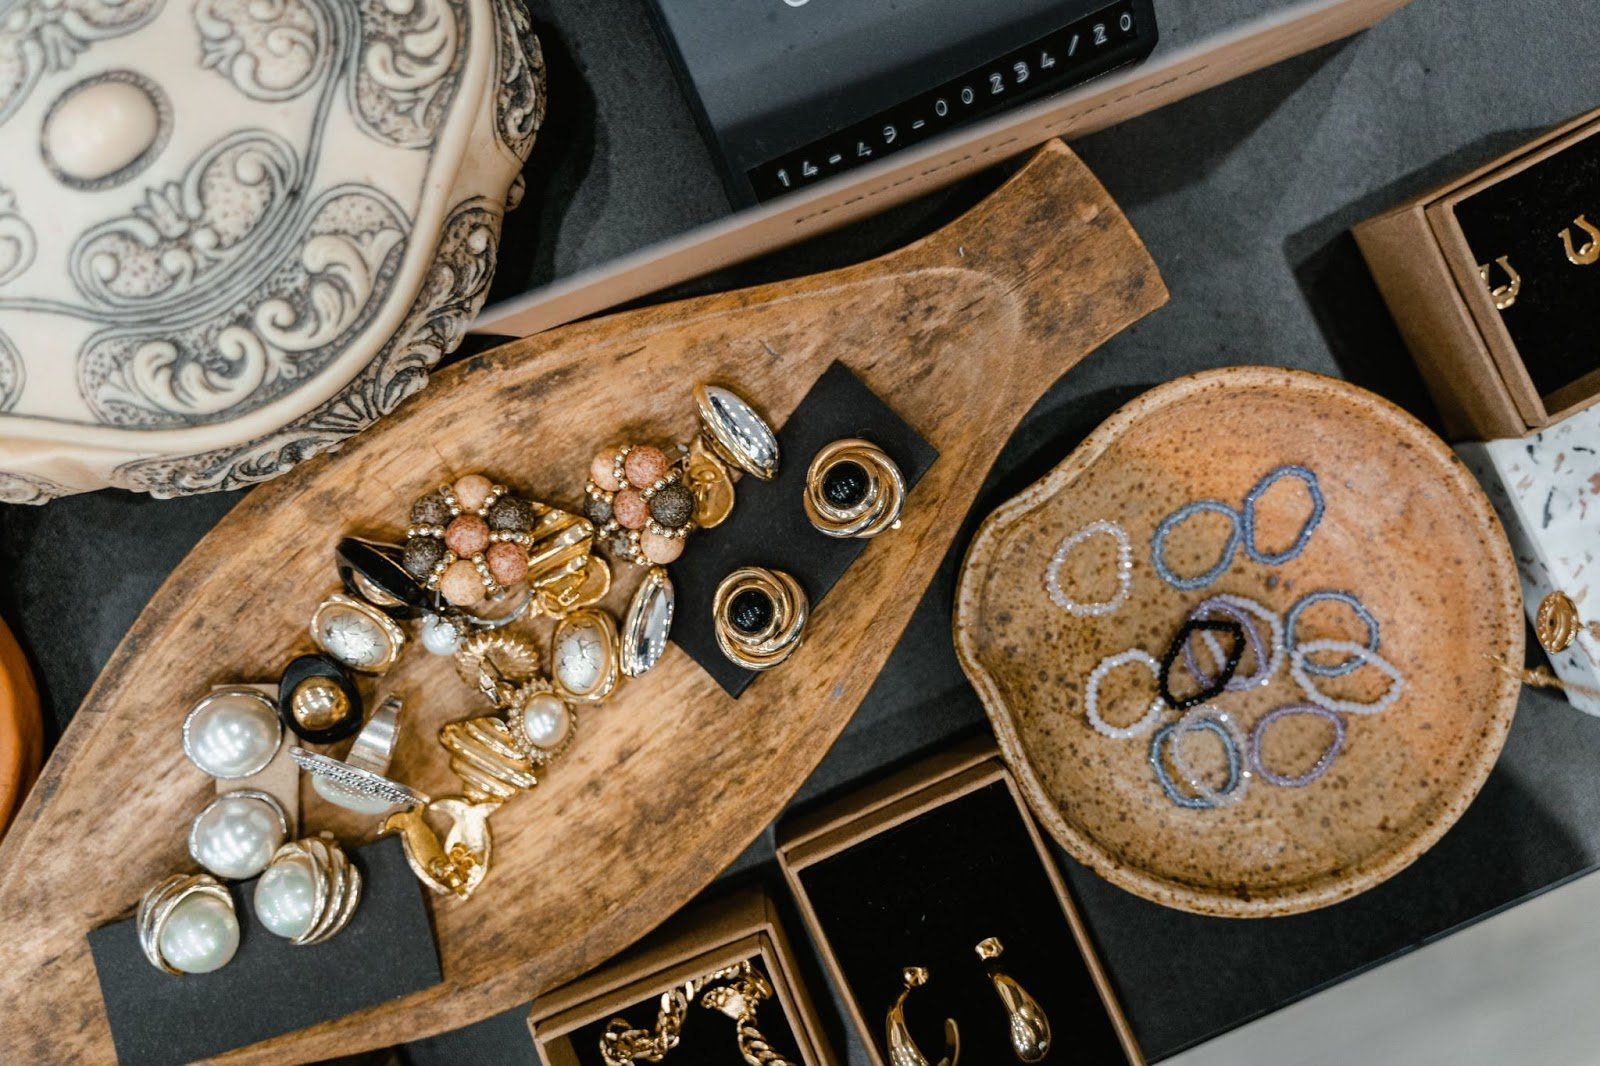 Stone jewelry of rings, bracelets, earrings, and necklaces, on display on thick wooden plates.